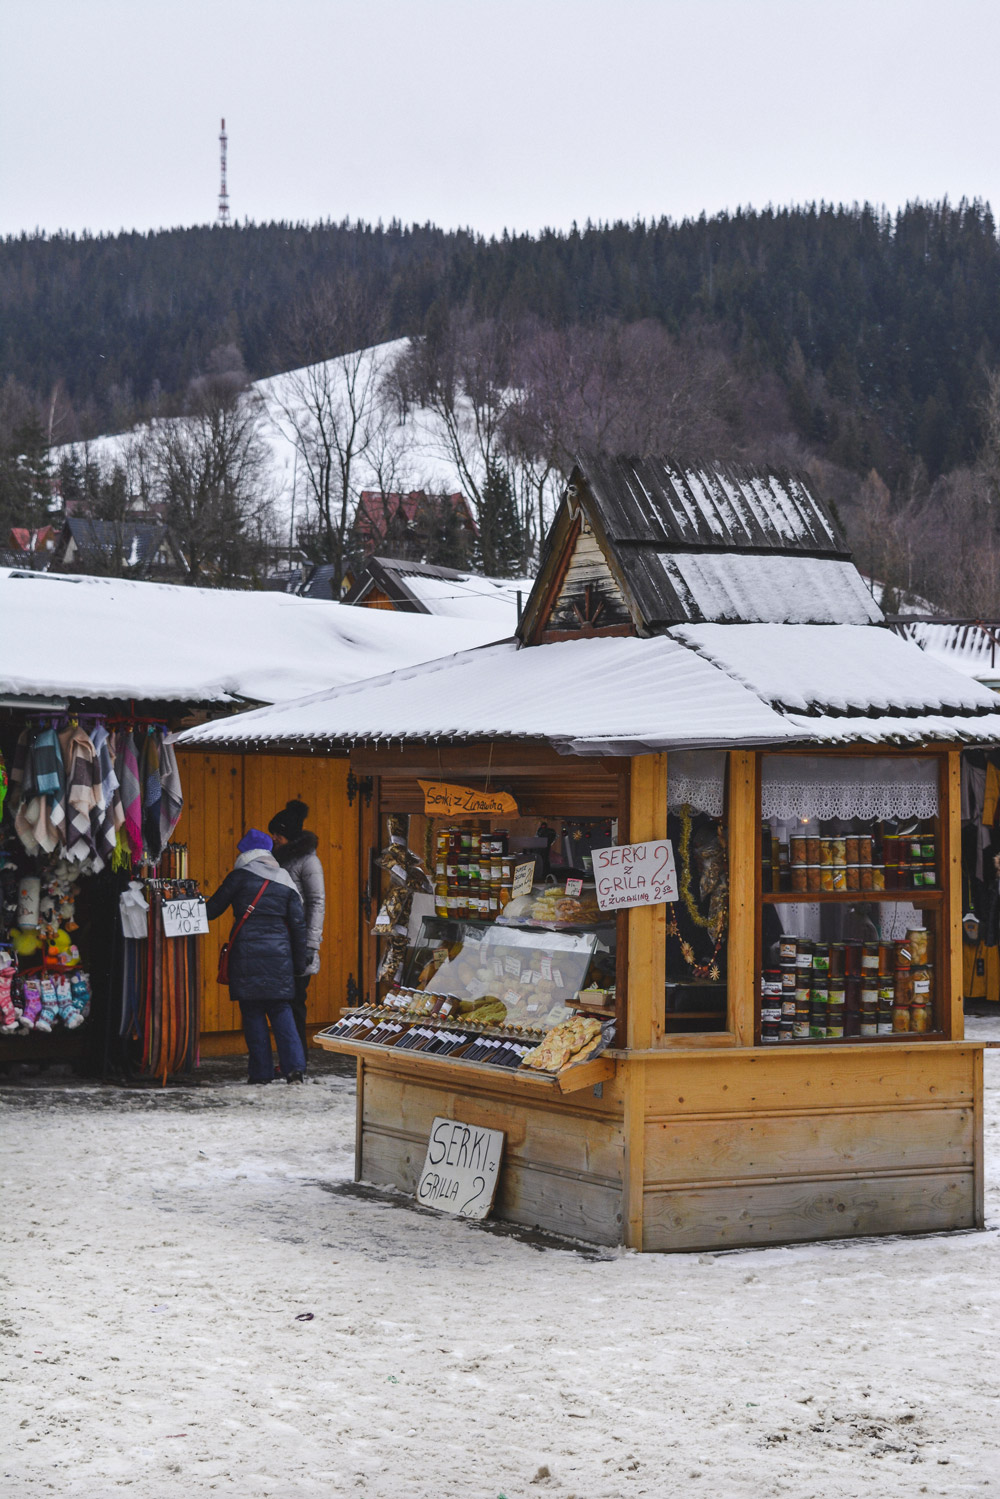 The market in Zakopane is filled with traditional products including delicious cheese